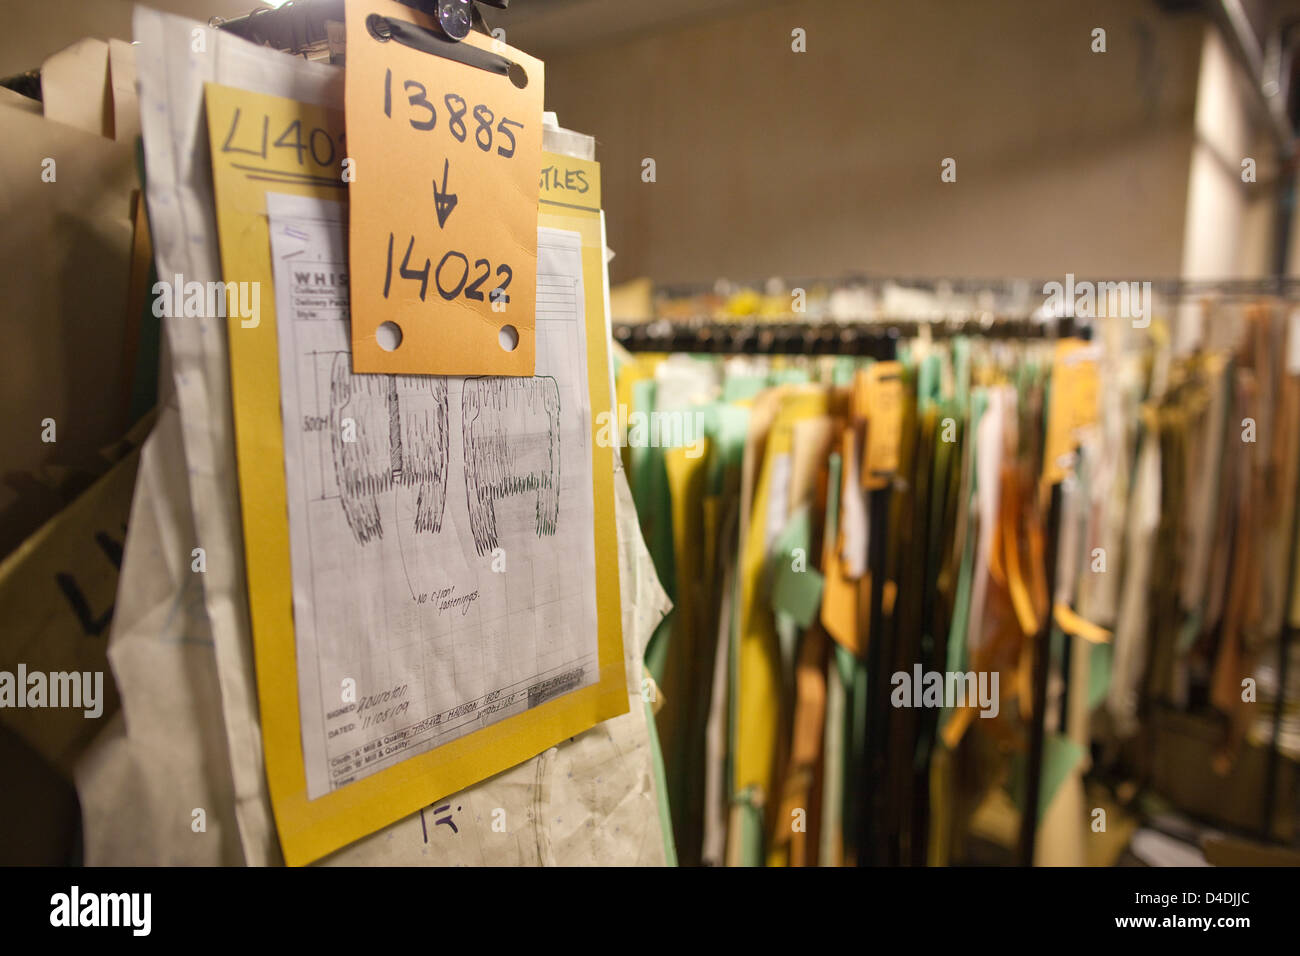 Archive room at British clothes manufacturer Private White V.C. in Salford, Manchester, England, UK - Stock Image